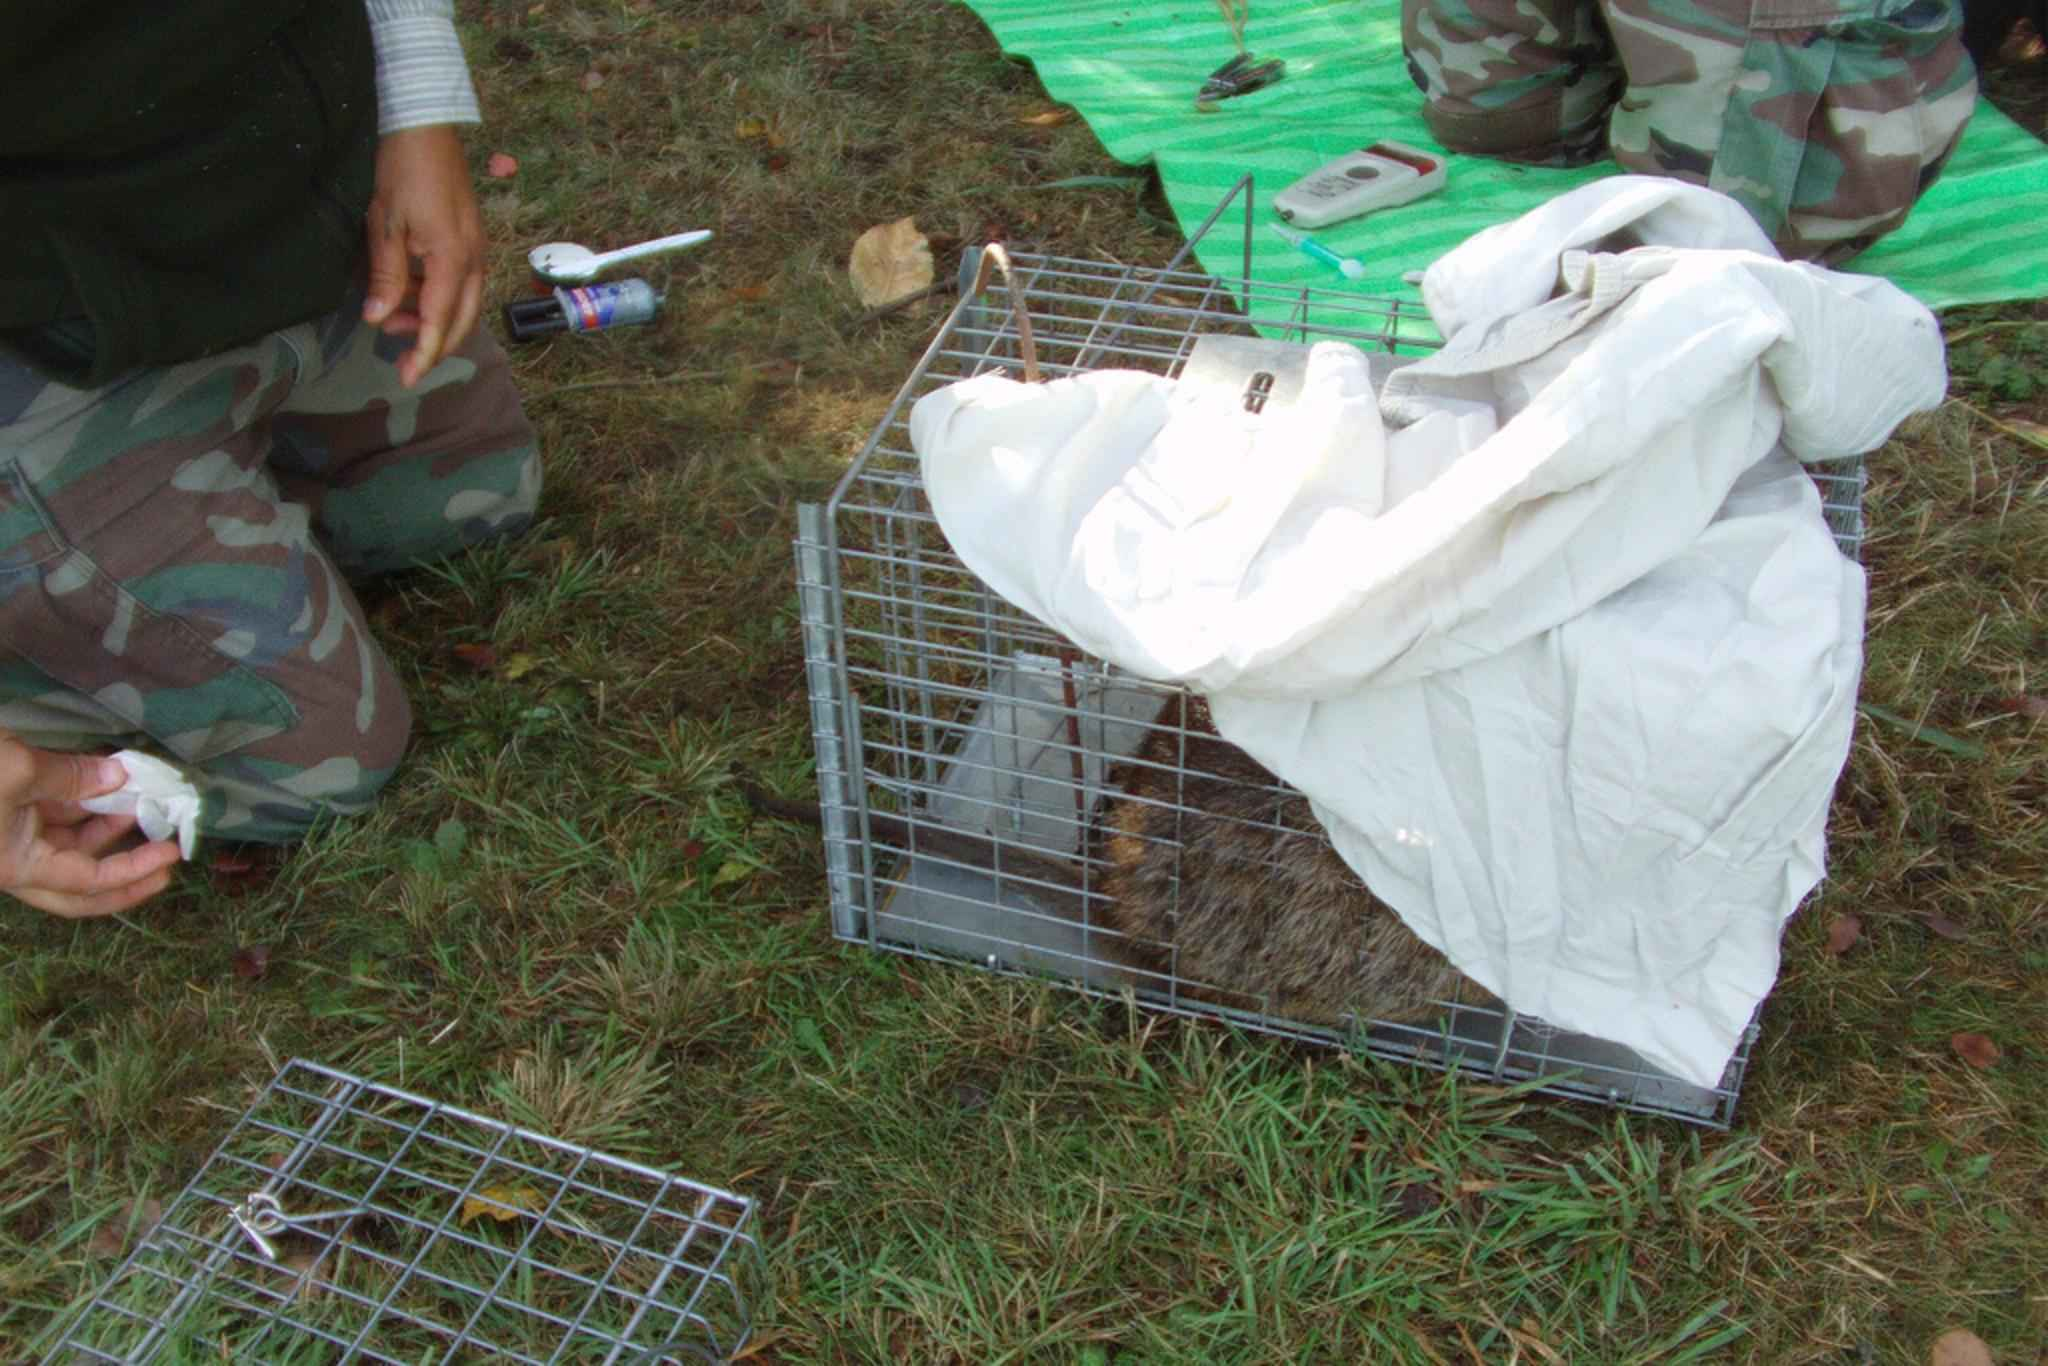 Samples and data are taken from a caged nutria. (Public Domain Image)